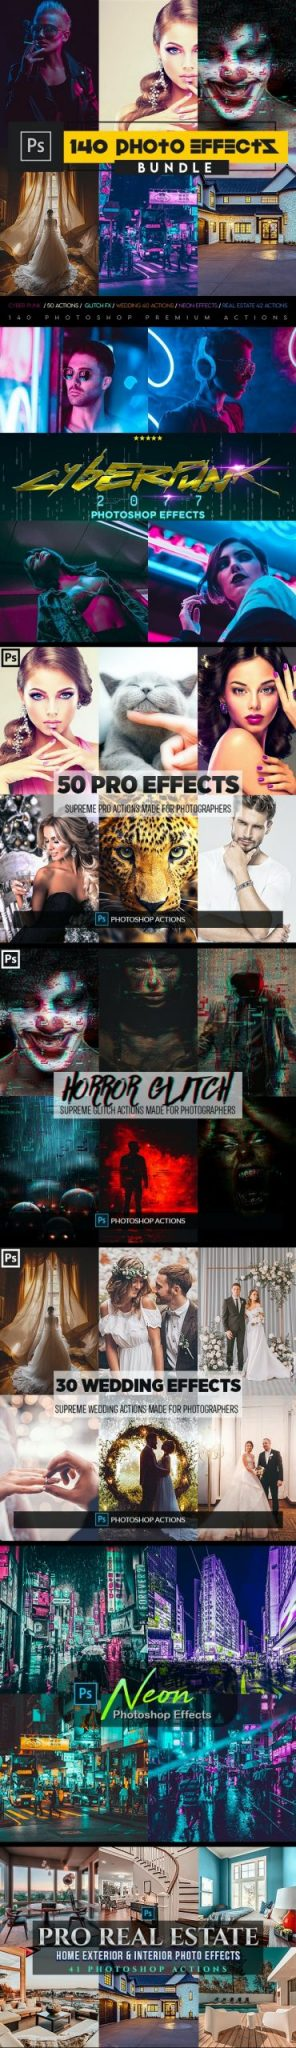 GraphicRiver – SupremeTones Photo Effects Actions BUDNLE 27070454 Free Download